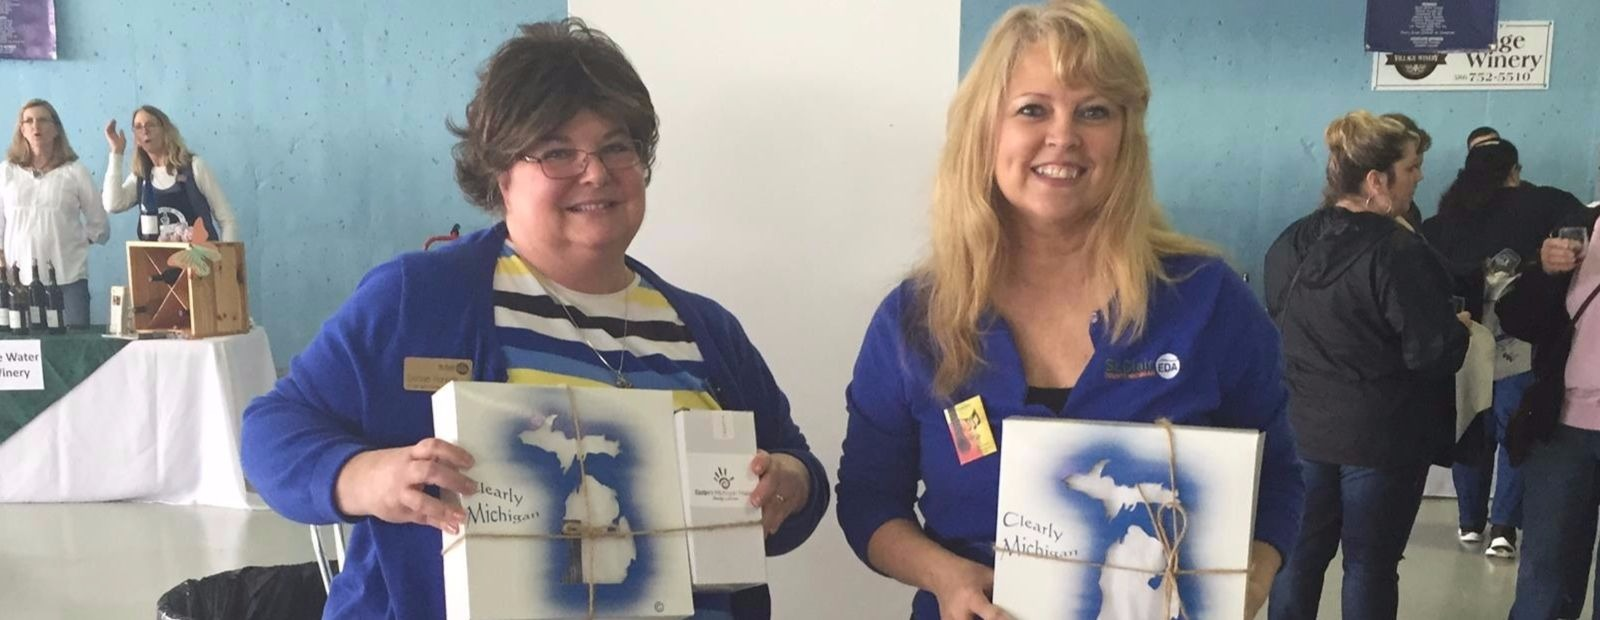 Denise Horvath and Tina Frazier show off Eastern Michigan Makers Boxes <span class='image-credits'>Courtesy of St. Clair County Economic Development Alliance</span>